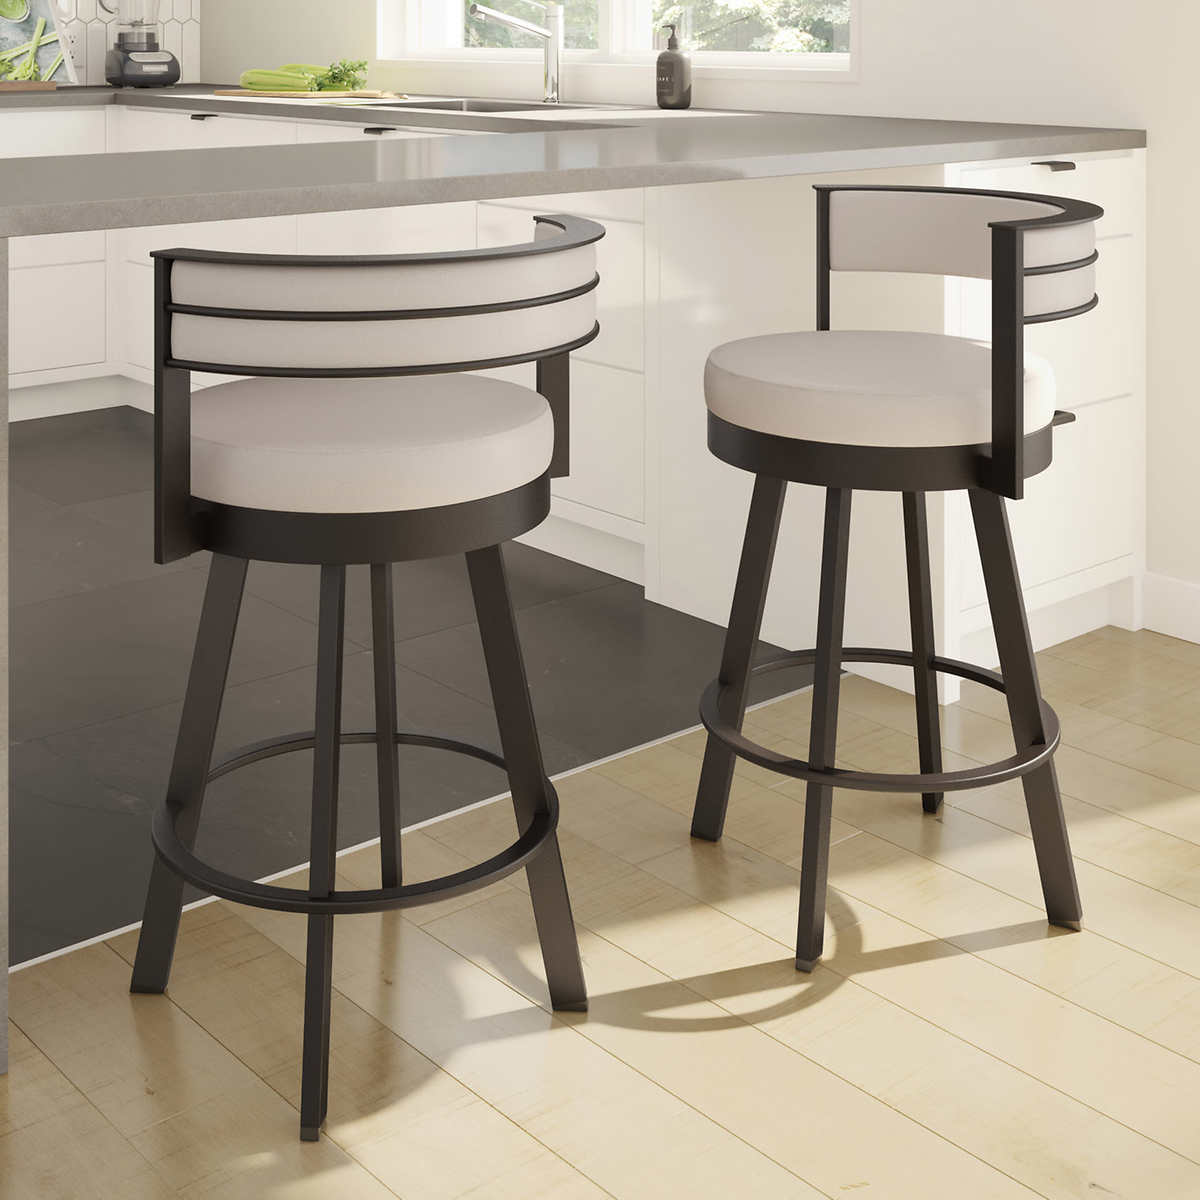 Amisco Browser Brown Bar or Counter Stool